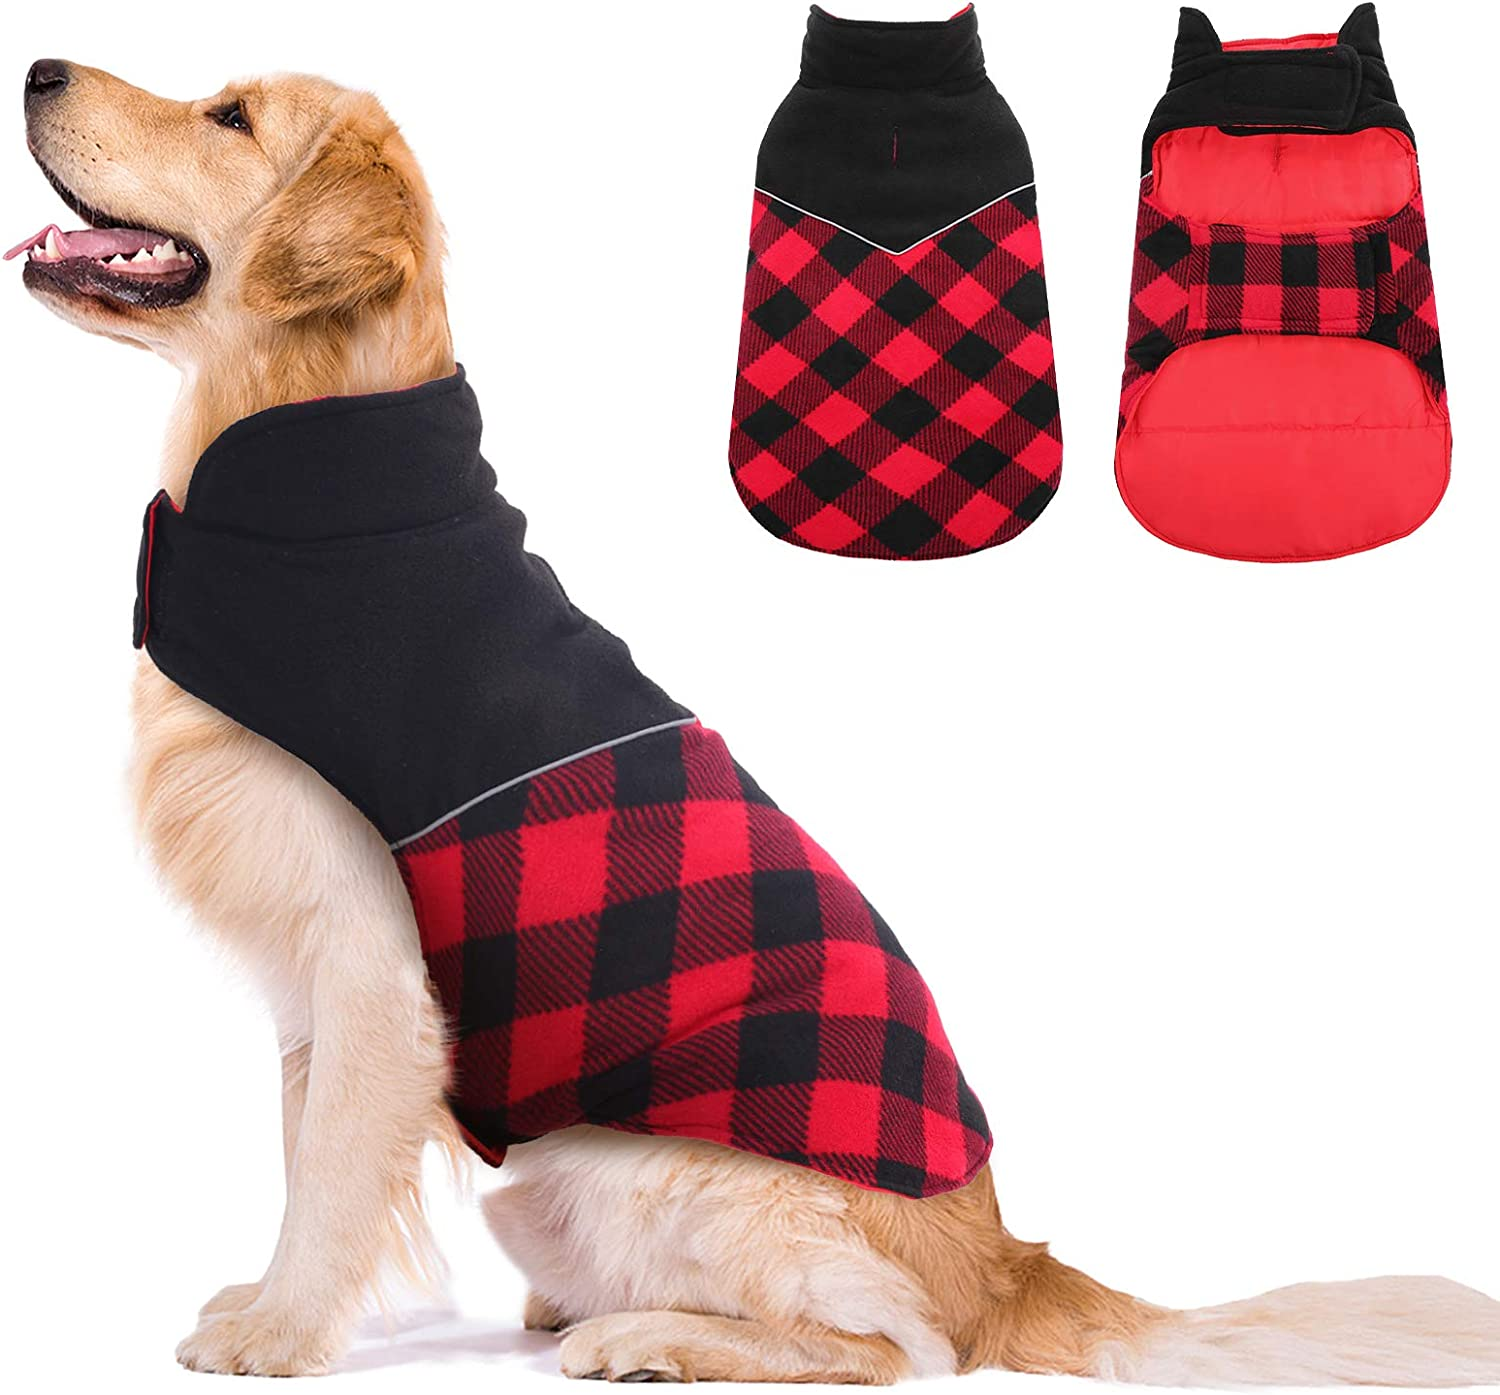 Kuoser Dog Winter Coat, Reflective Cold Weather Dog Jacket, Reversible British Style Plaid Dog Coat Warm Cotton Thickened Vest Windproof Outdoor Apparel for Small Medium and Large Dogs Red S : Pet Supplies